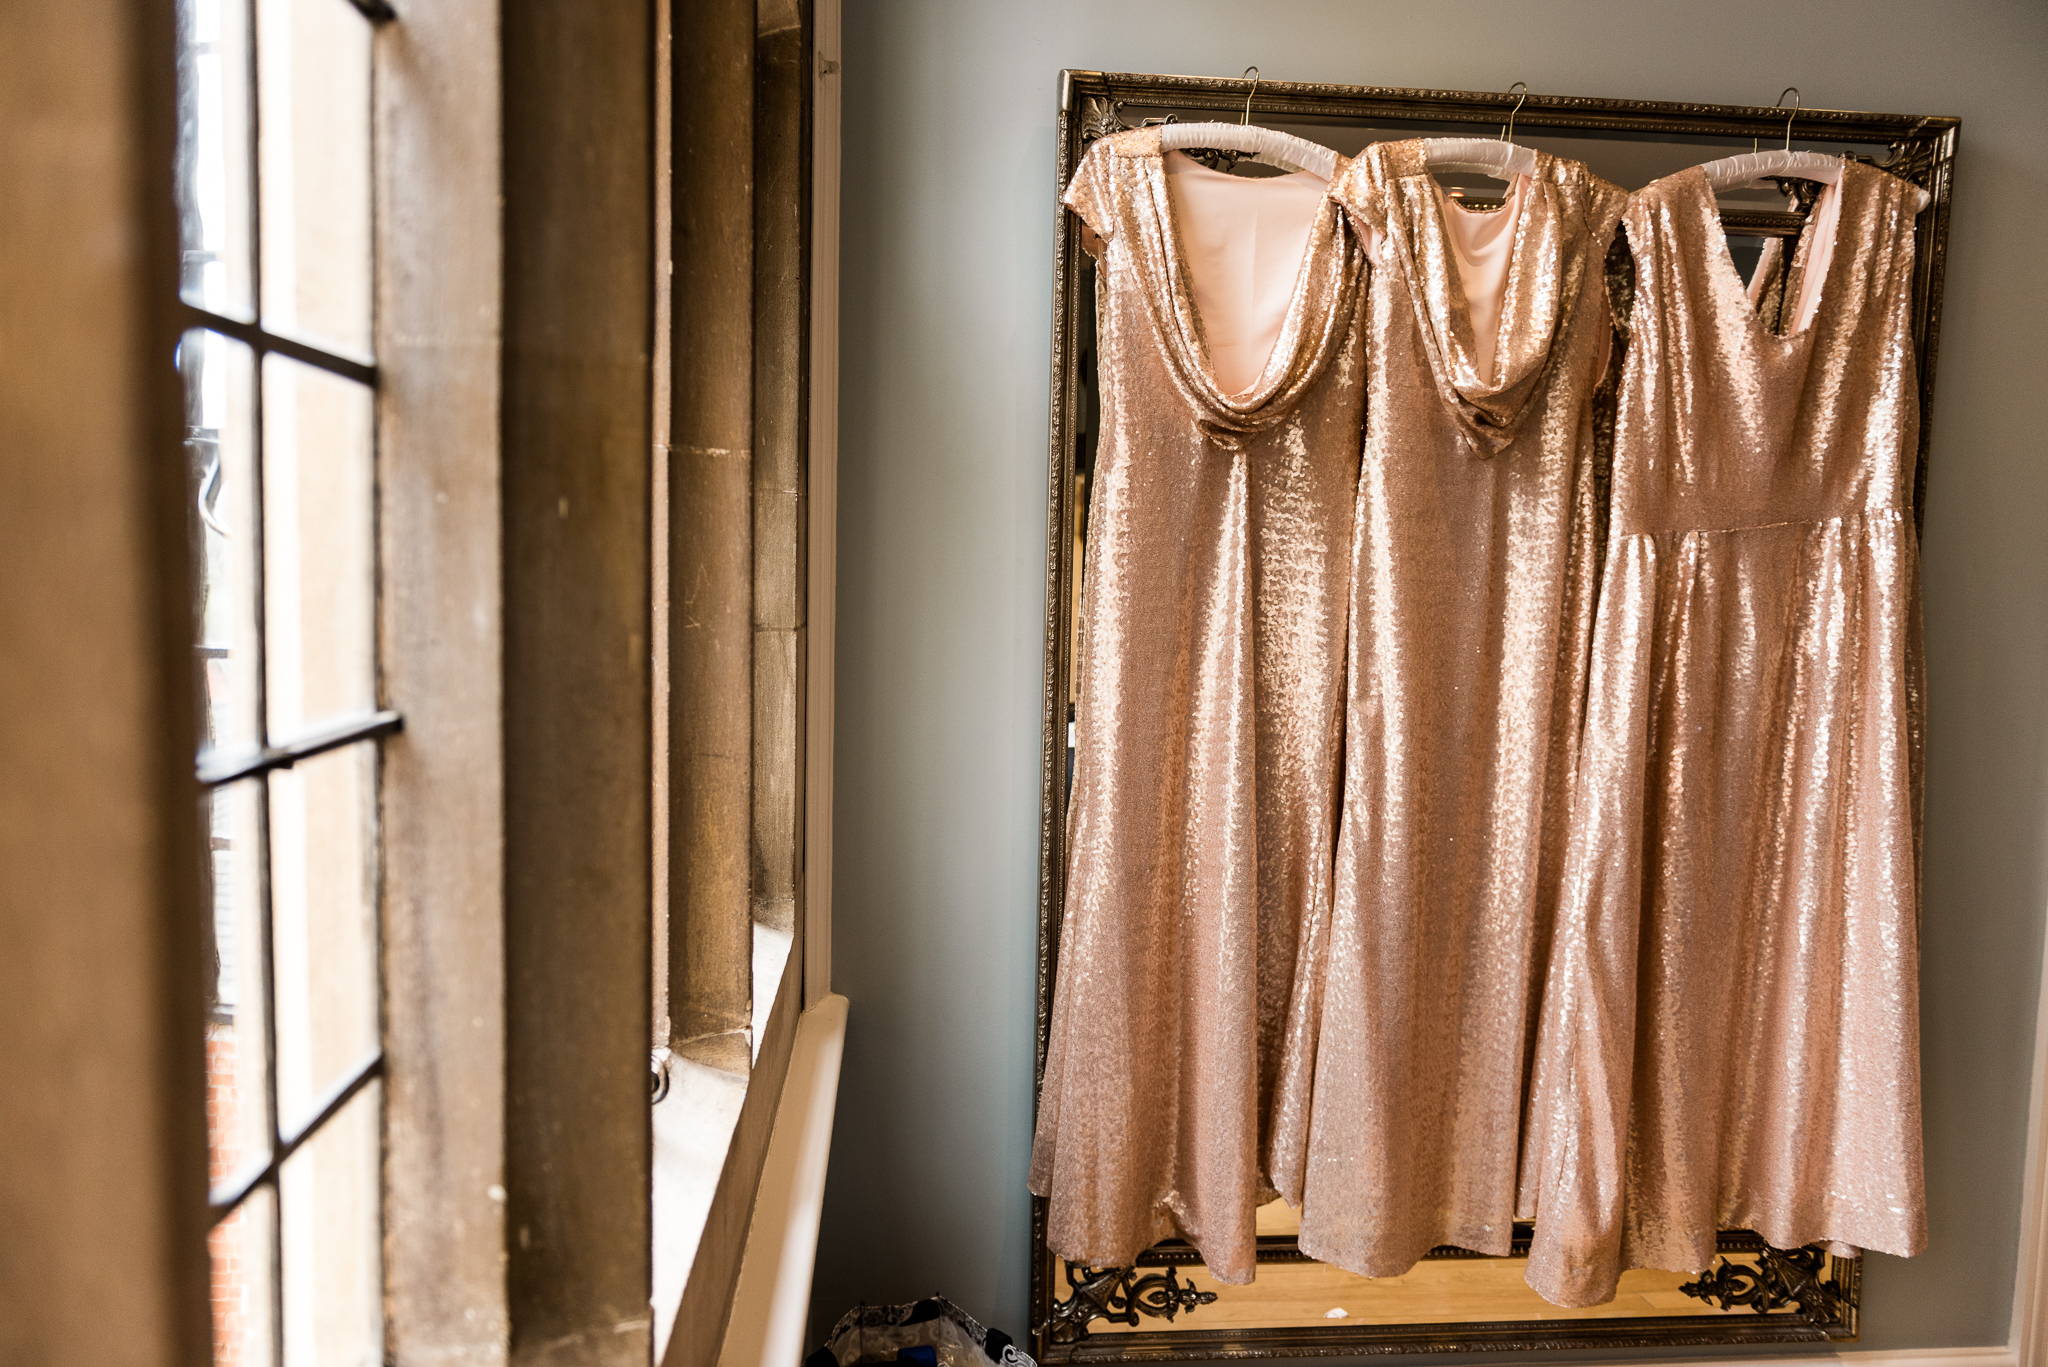 Stylish Easter Wedding at Pendrell Hall Country House Wedding Venue Staffordshire - Jenny Harper-7.jpg